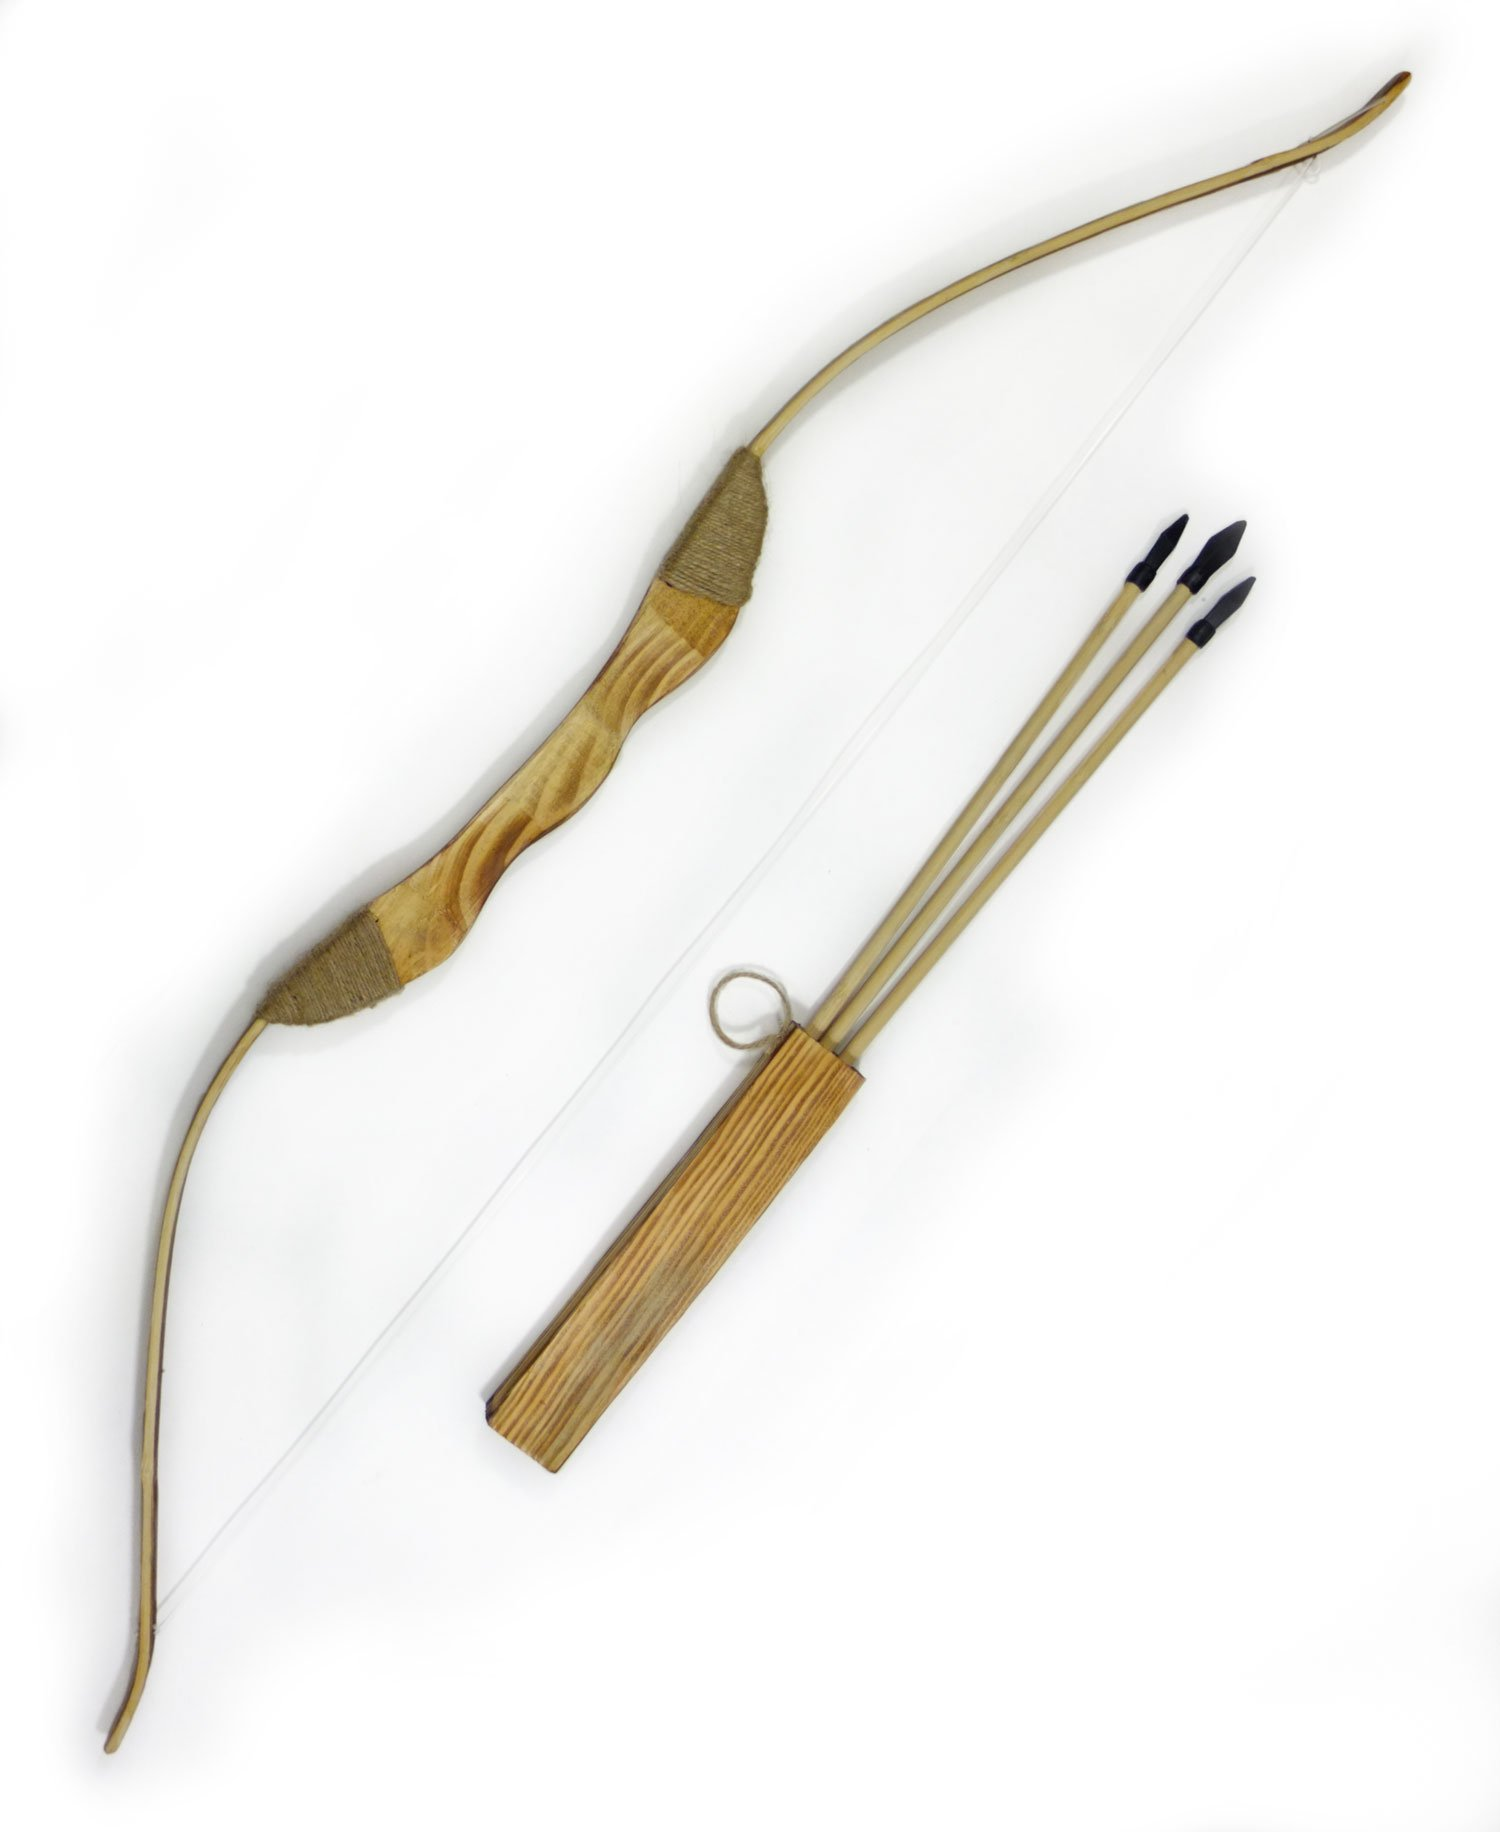 Children's Wooden Toy Bow and Arrow Set with Quiver and Three Rubber Tipped Arrows.